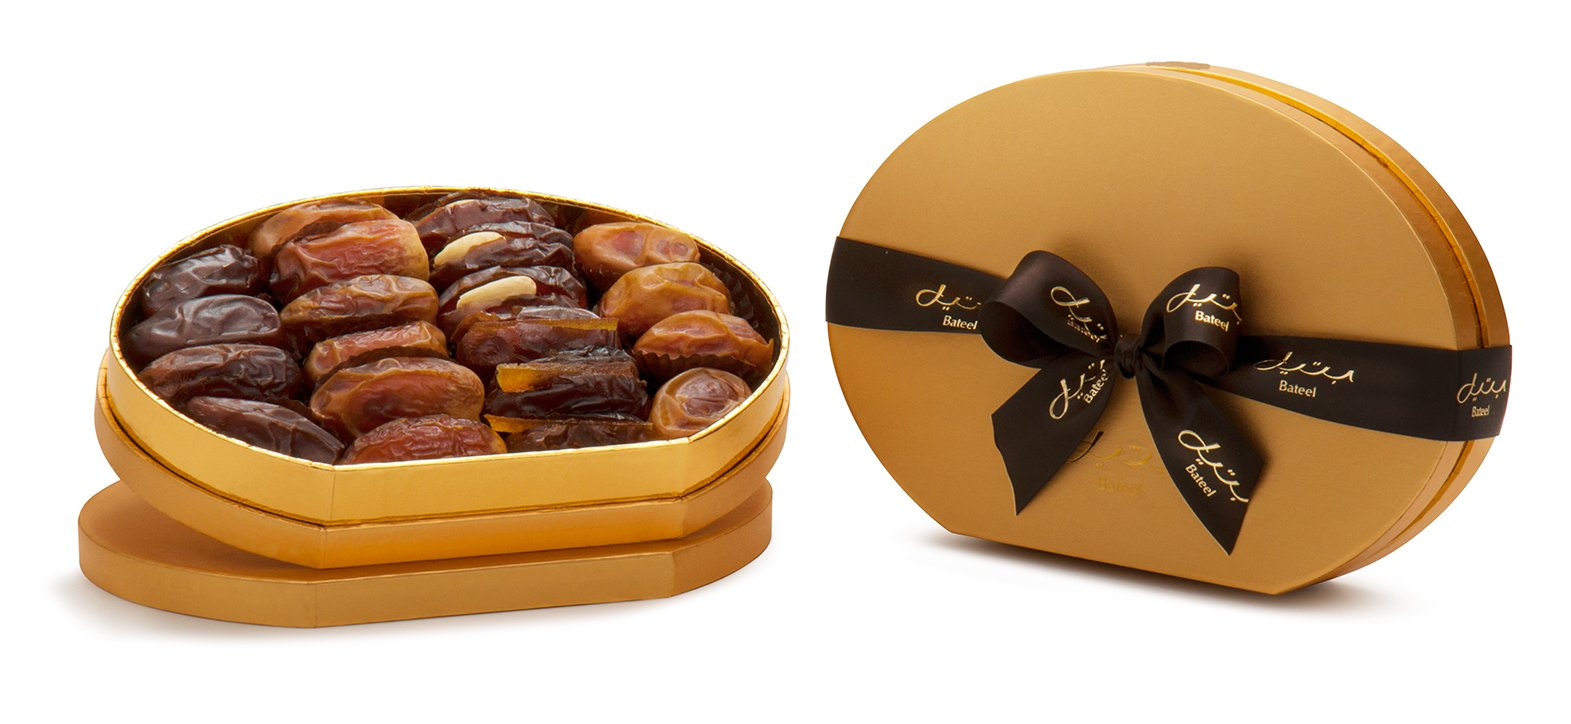 Gold Oval Gift Box with Gourmet Stuffed Dates (18 Pieces)